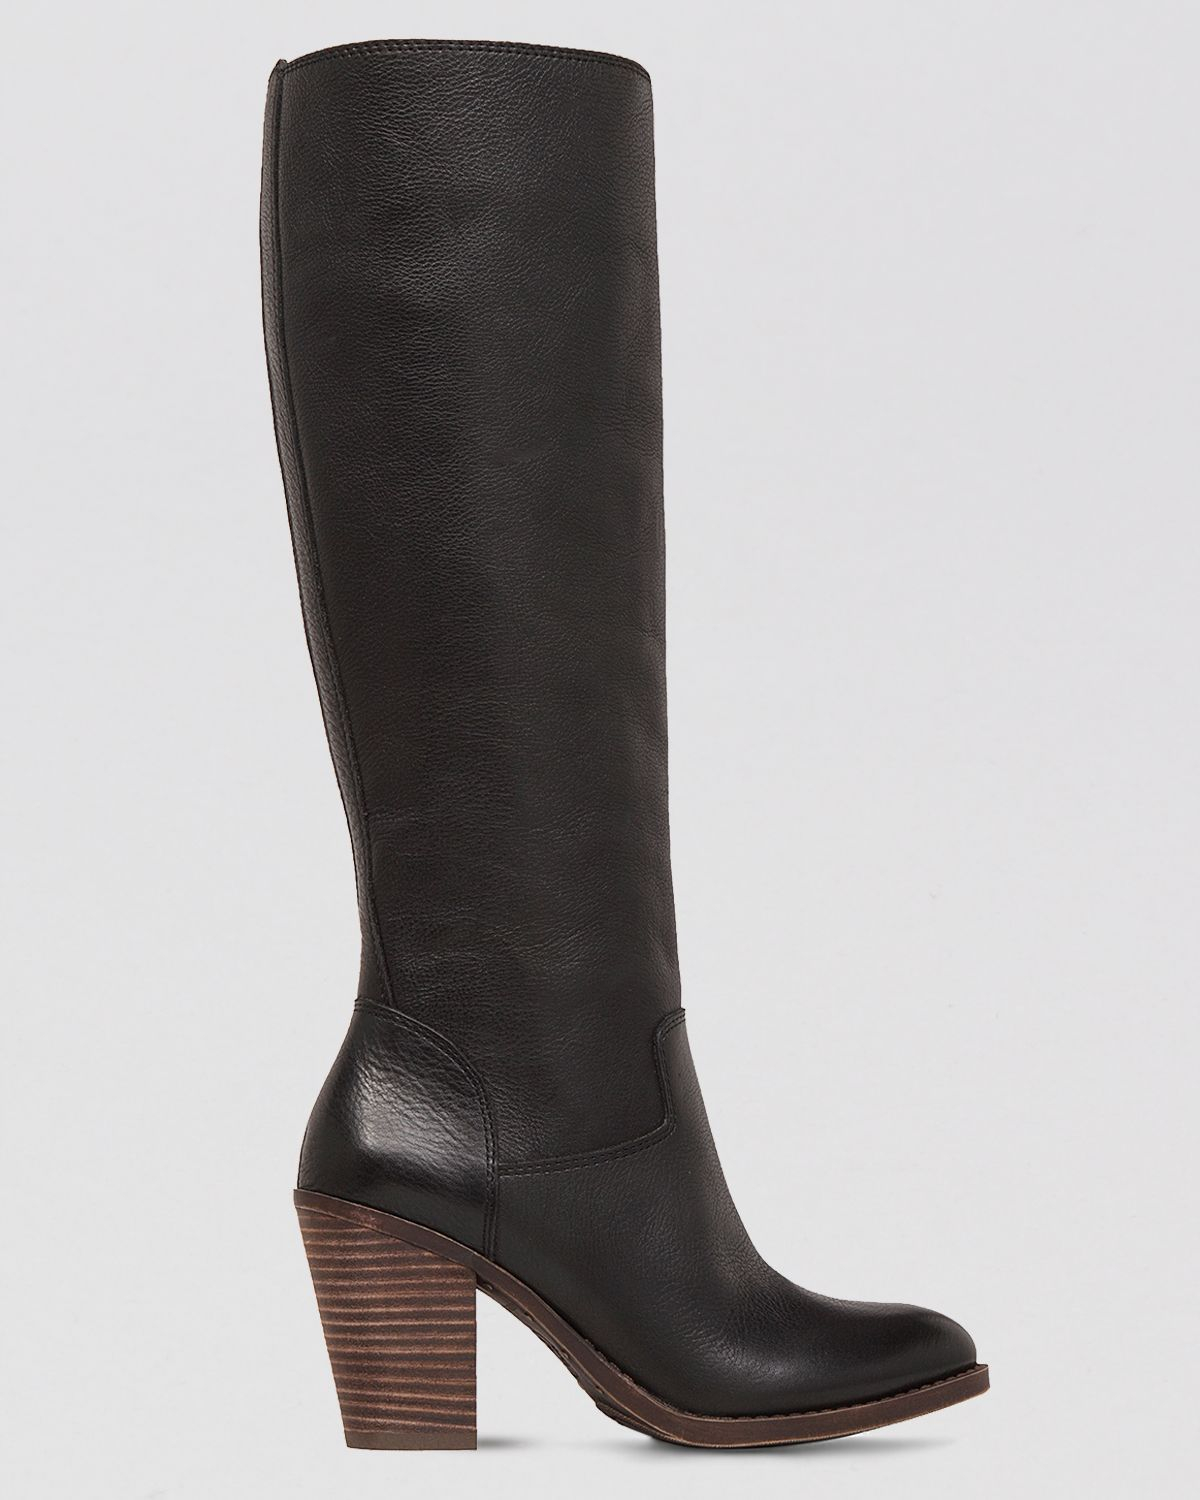 lucky brand boots espositoh in brown lyst